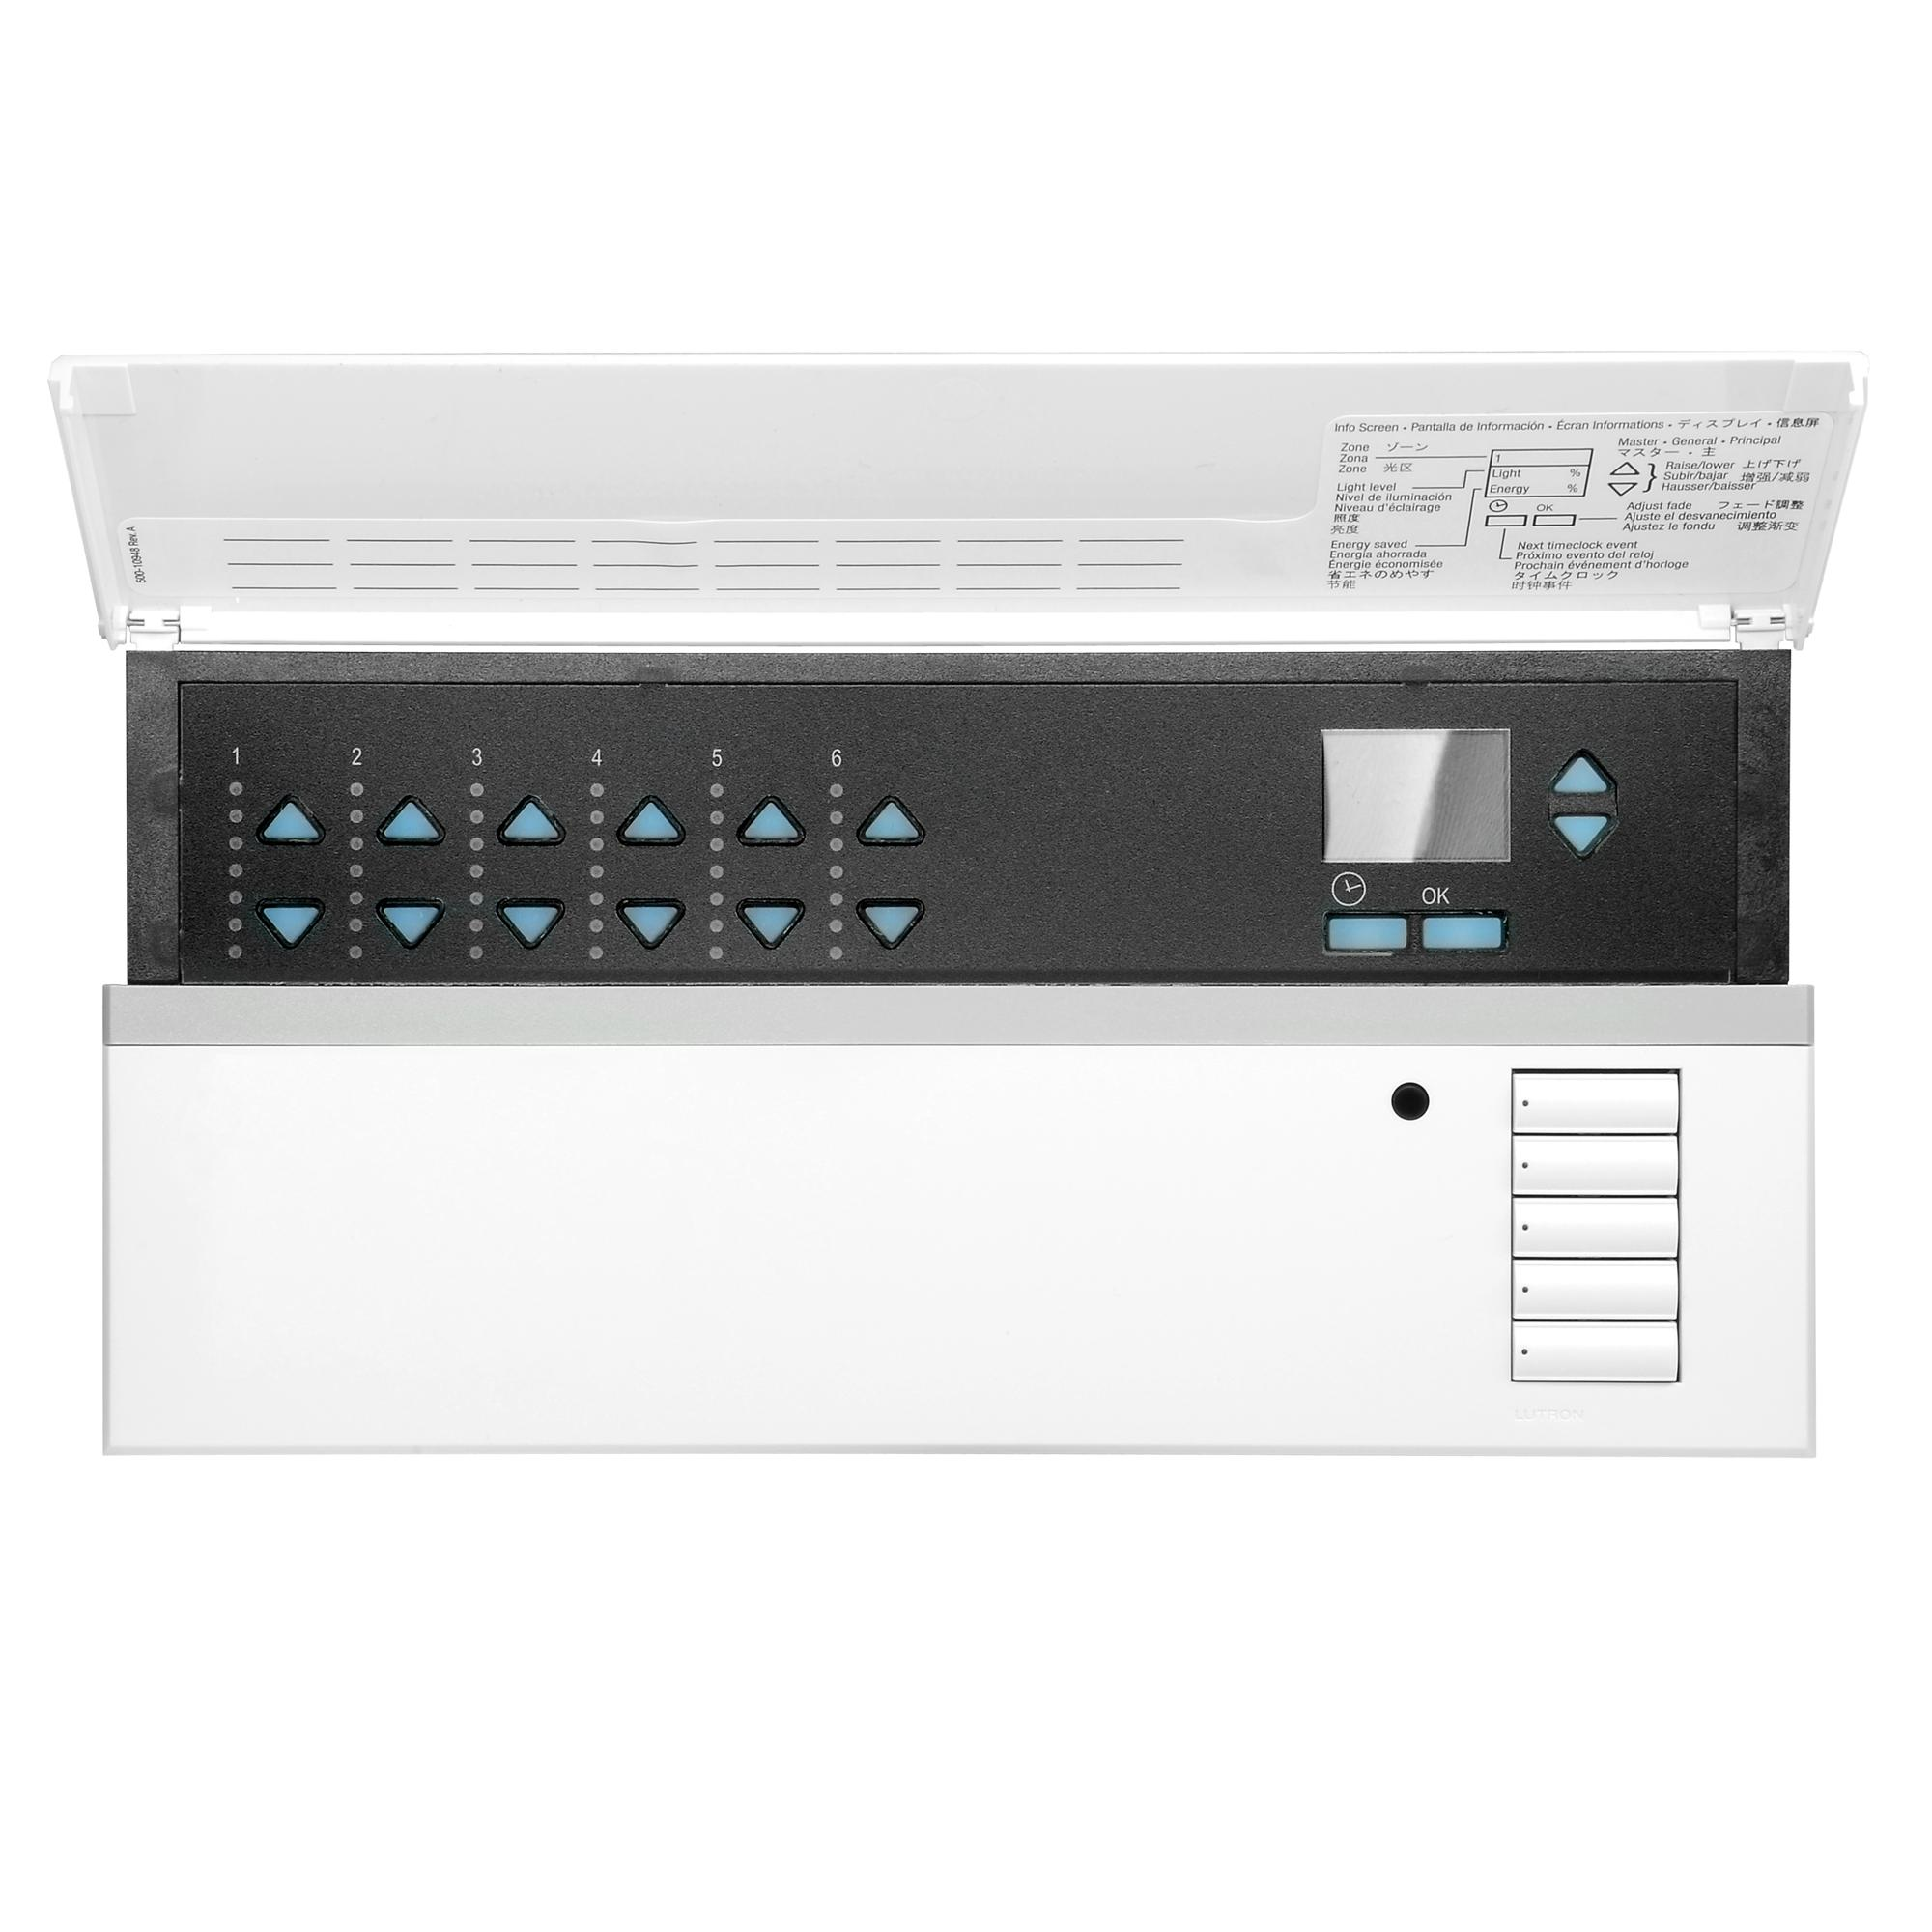 Lutron 4 Zone Lighting Control Lutron Qsgrk-6pce-twh Grafik Eye Qs 6 Zone Lighting